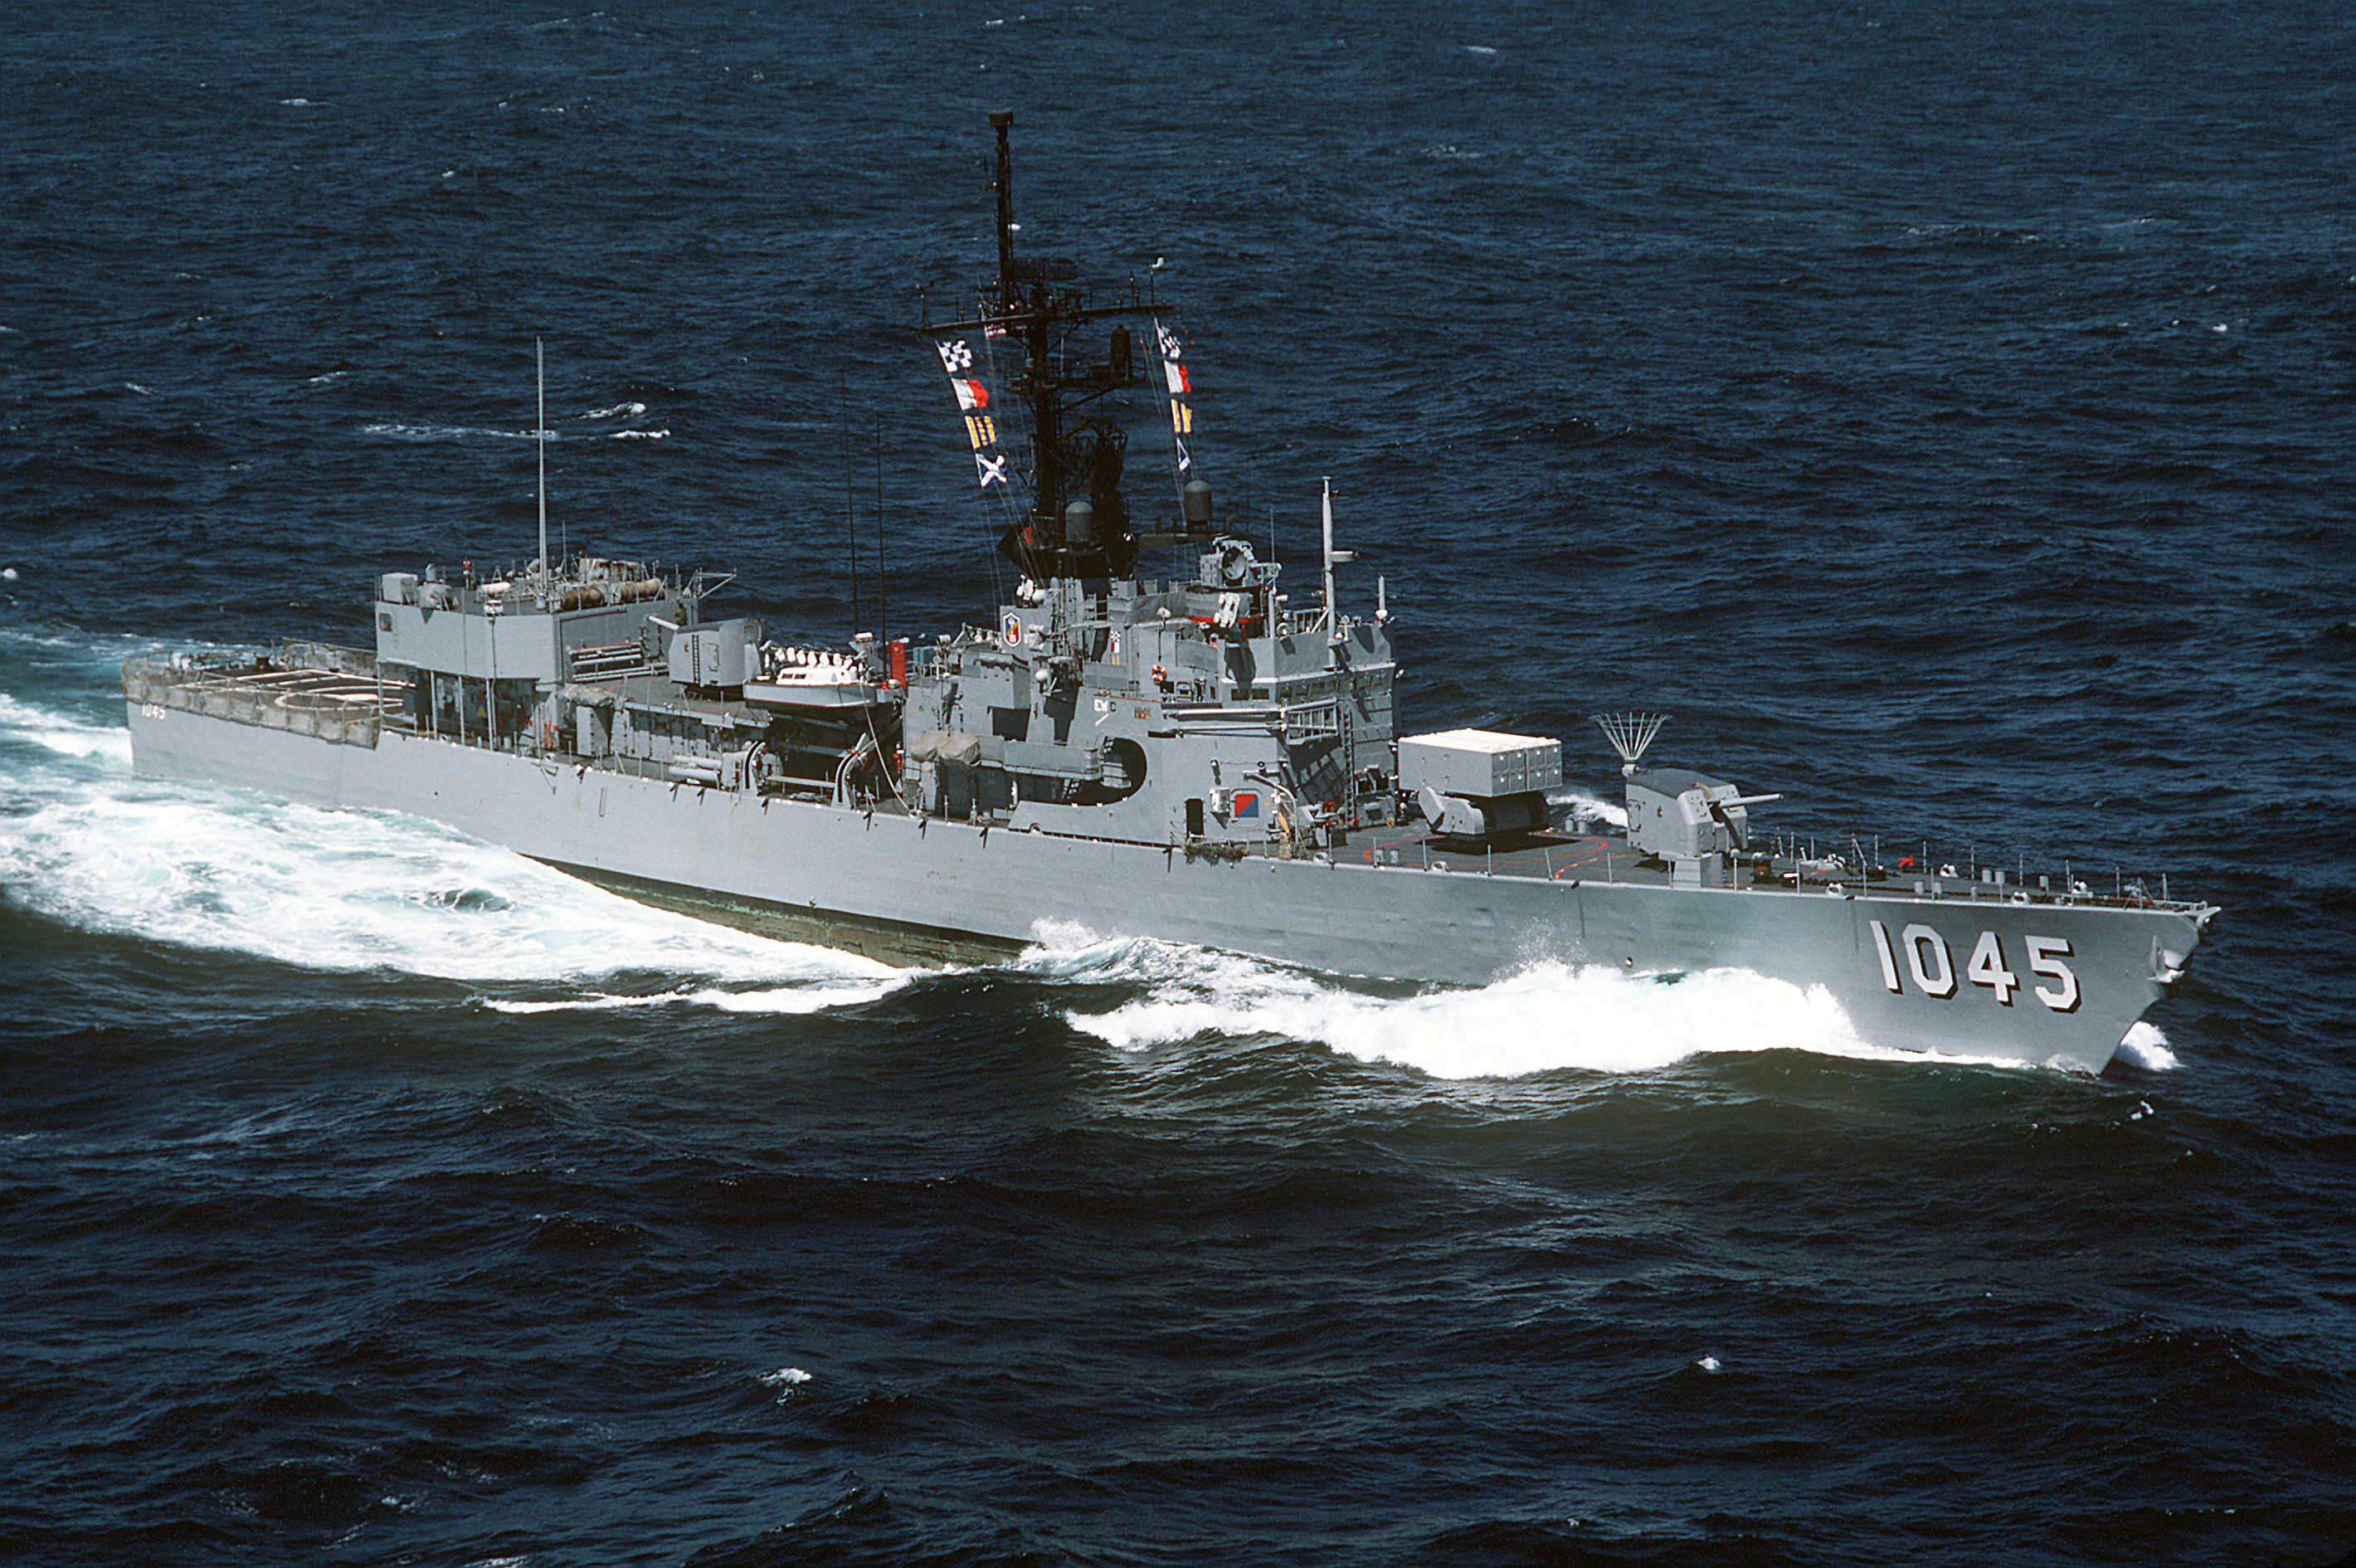 File:USS Davidson (FF-1045) underway on 1 July 1986 (6421920